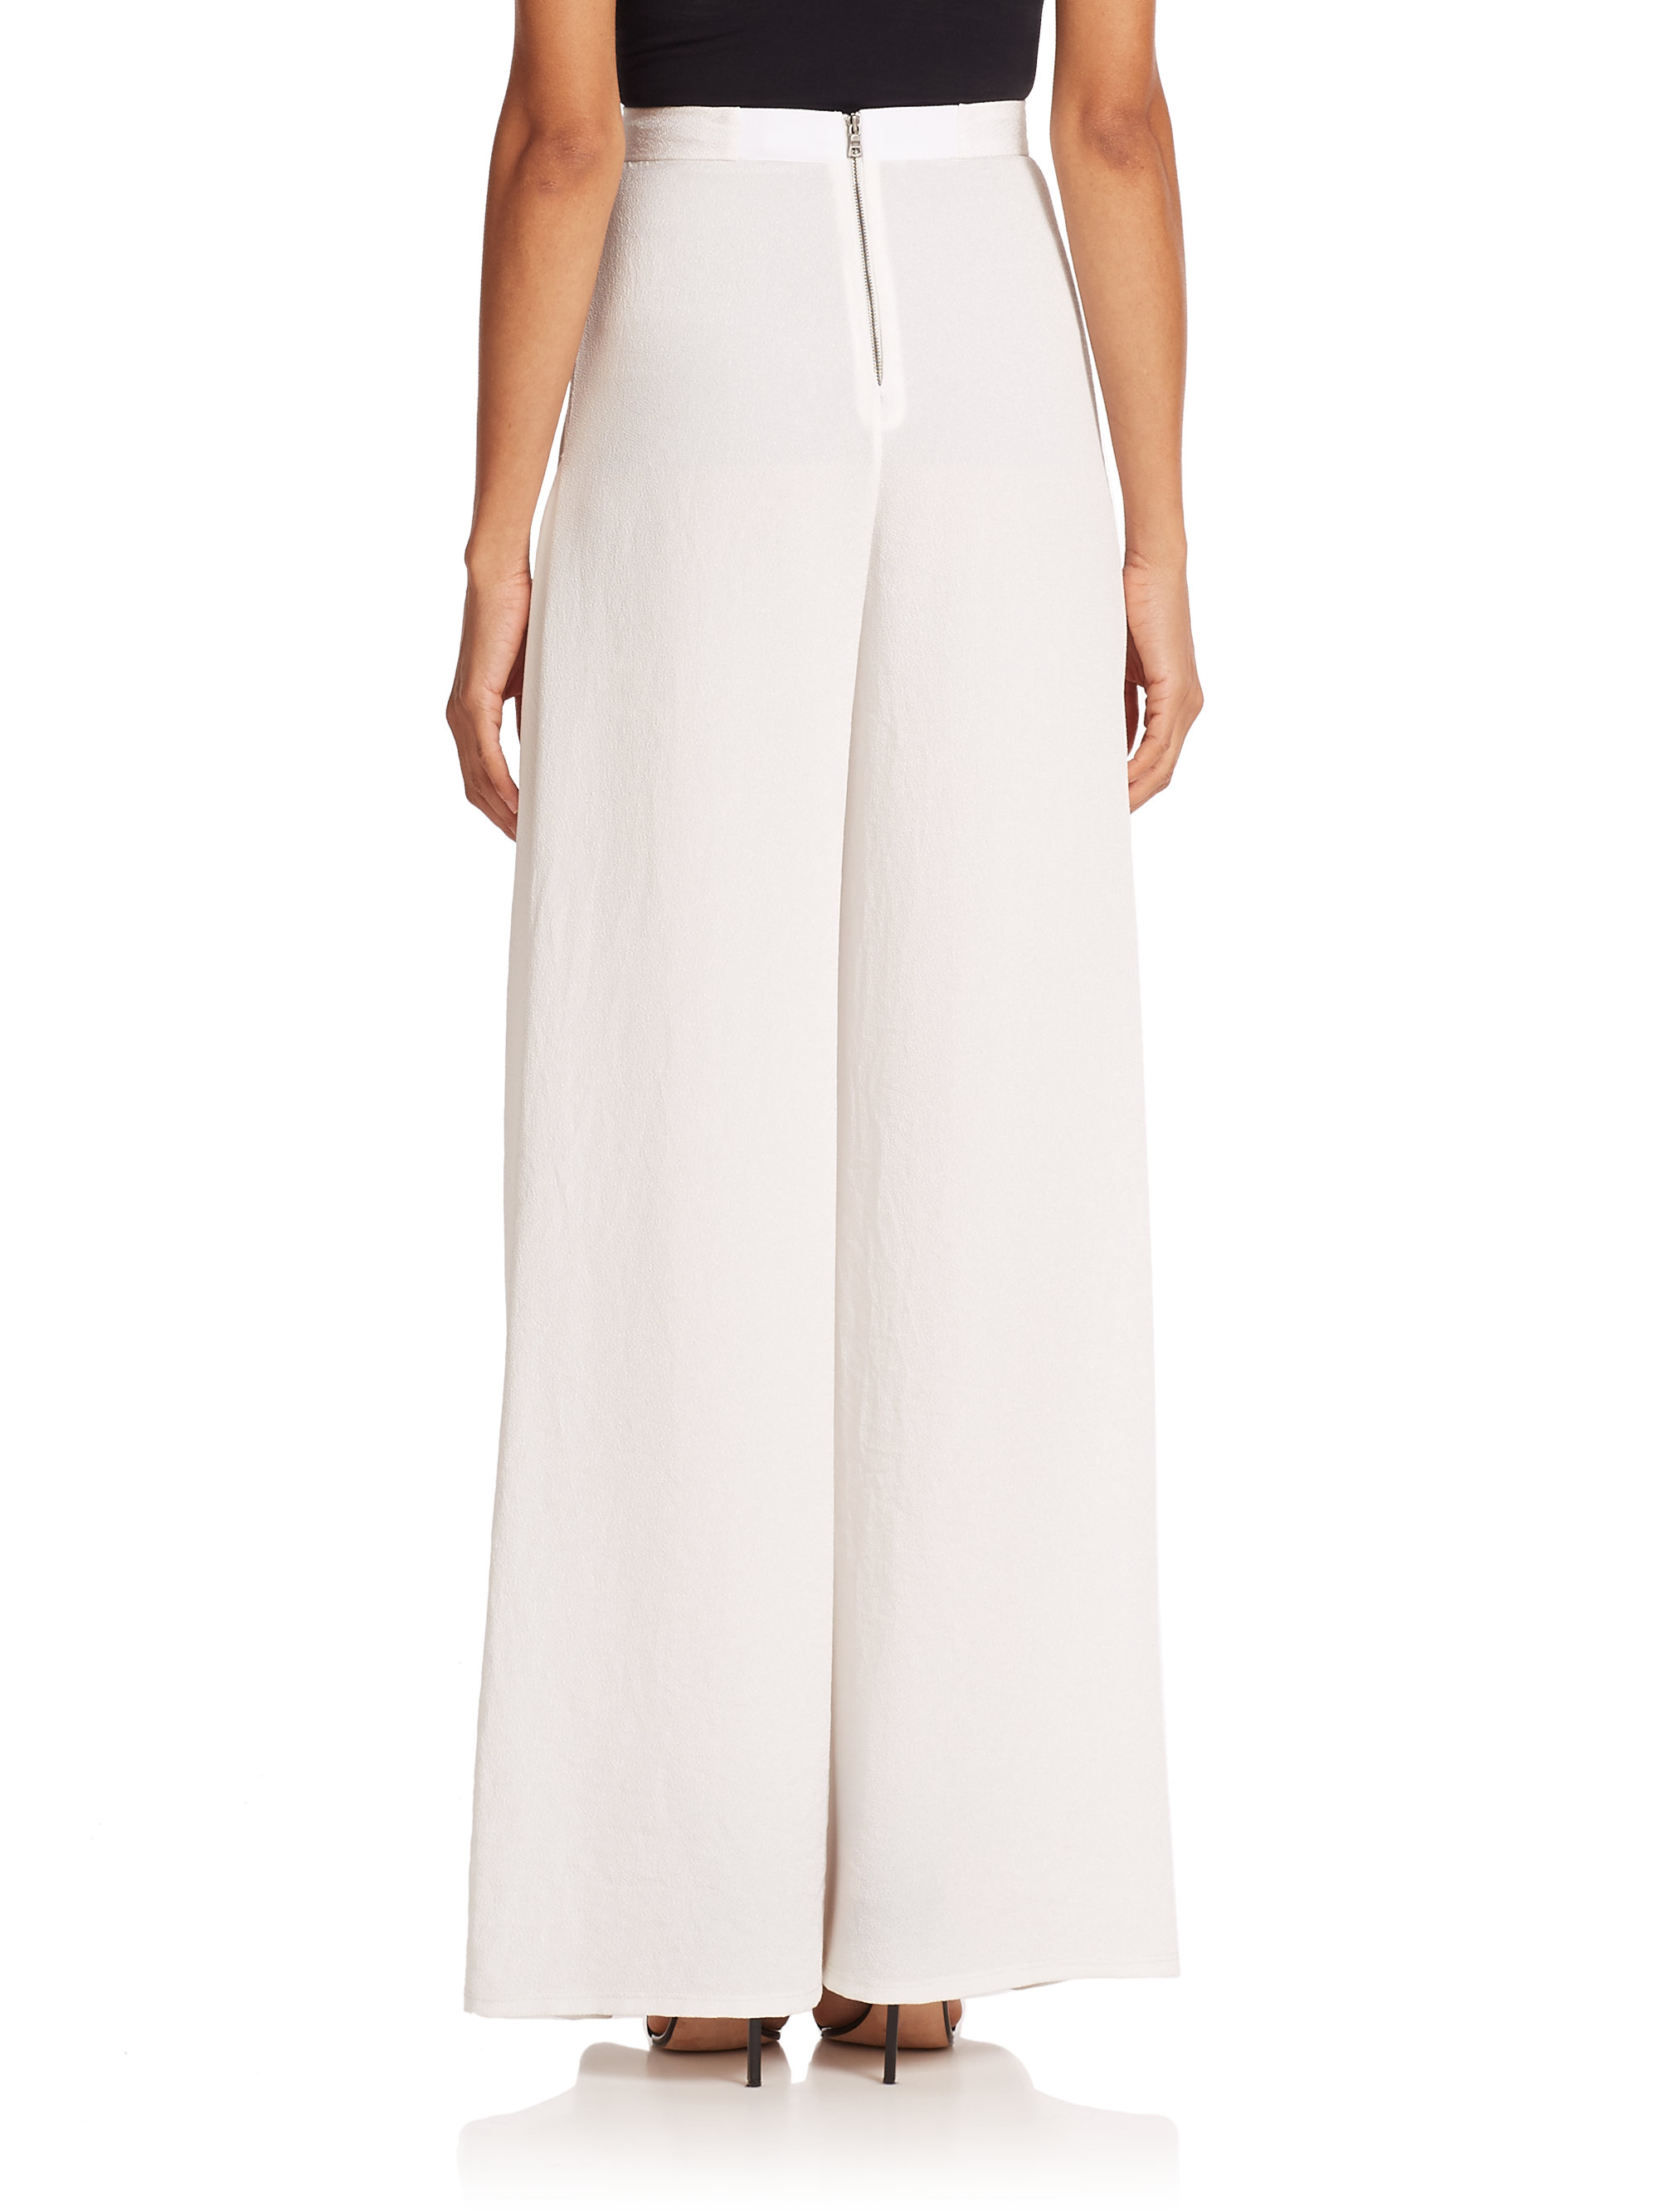 Alice   olivia Pleated-pocket Wide-leg Pants in White | Lyst